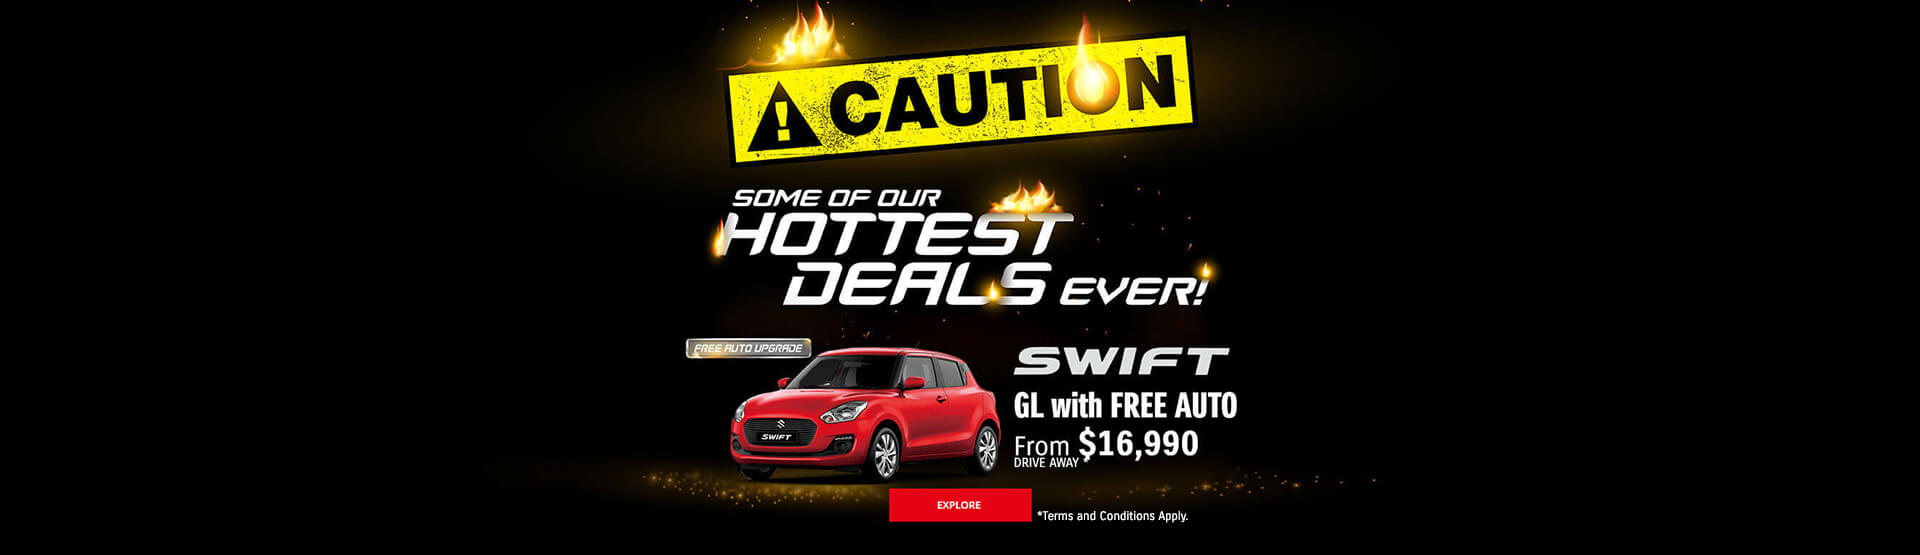 Swift GL with free auto